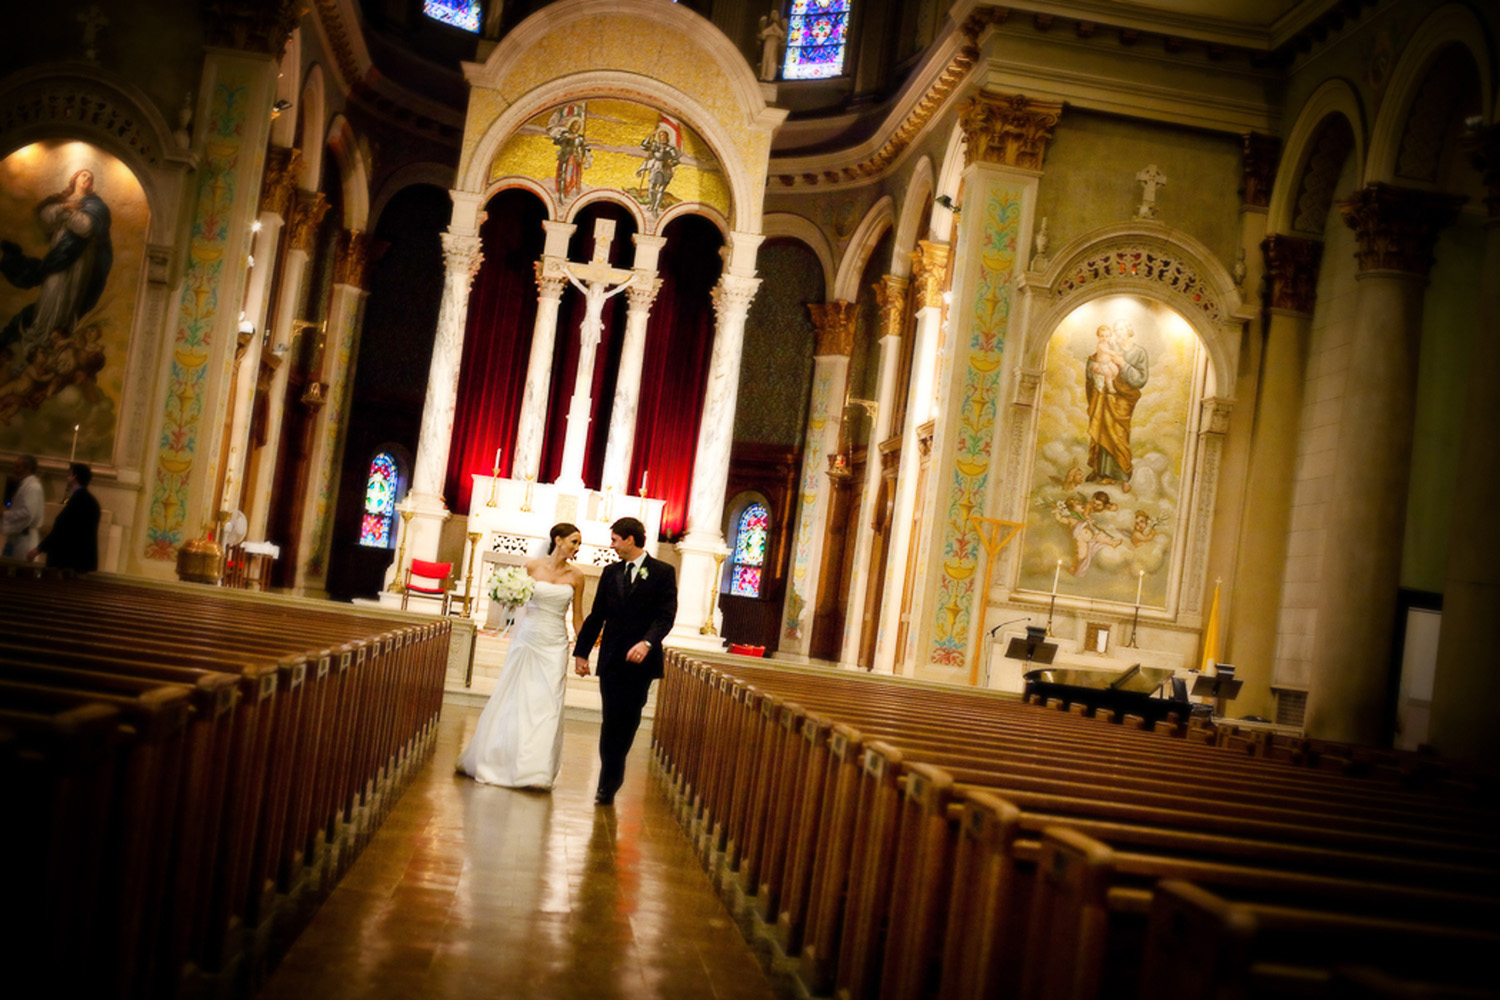 Indianapolis-Saint-Joan-of-Arc-Wedding-Photographer-Crowes-Eye-Photography-Bride-and-Groom-exit.jpg